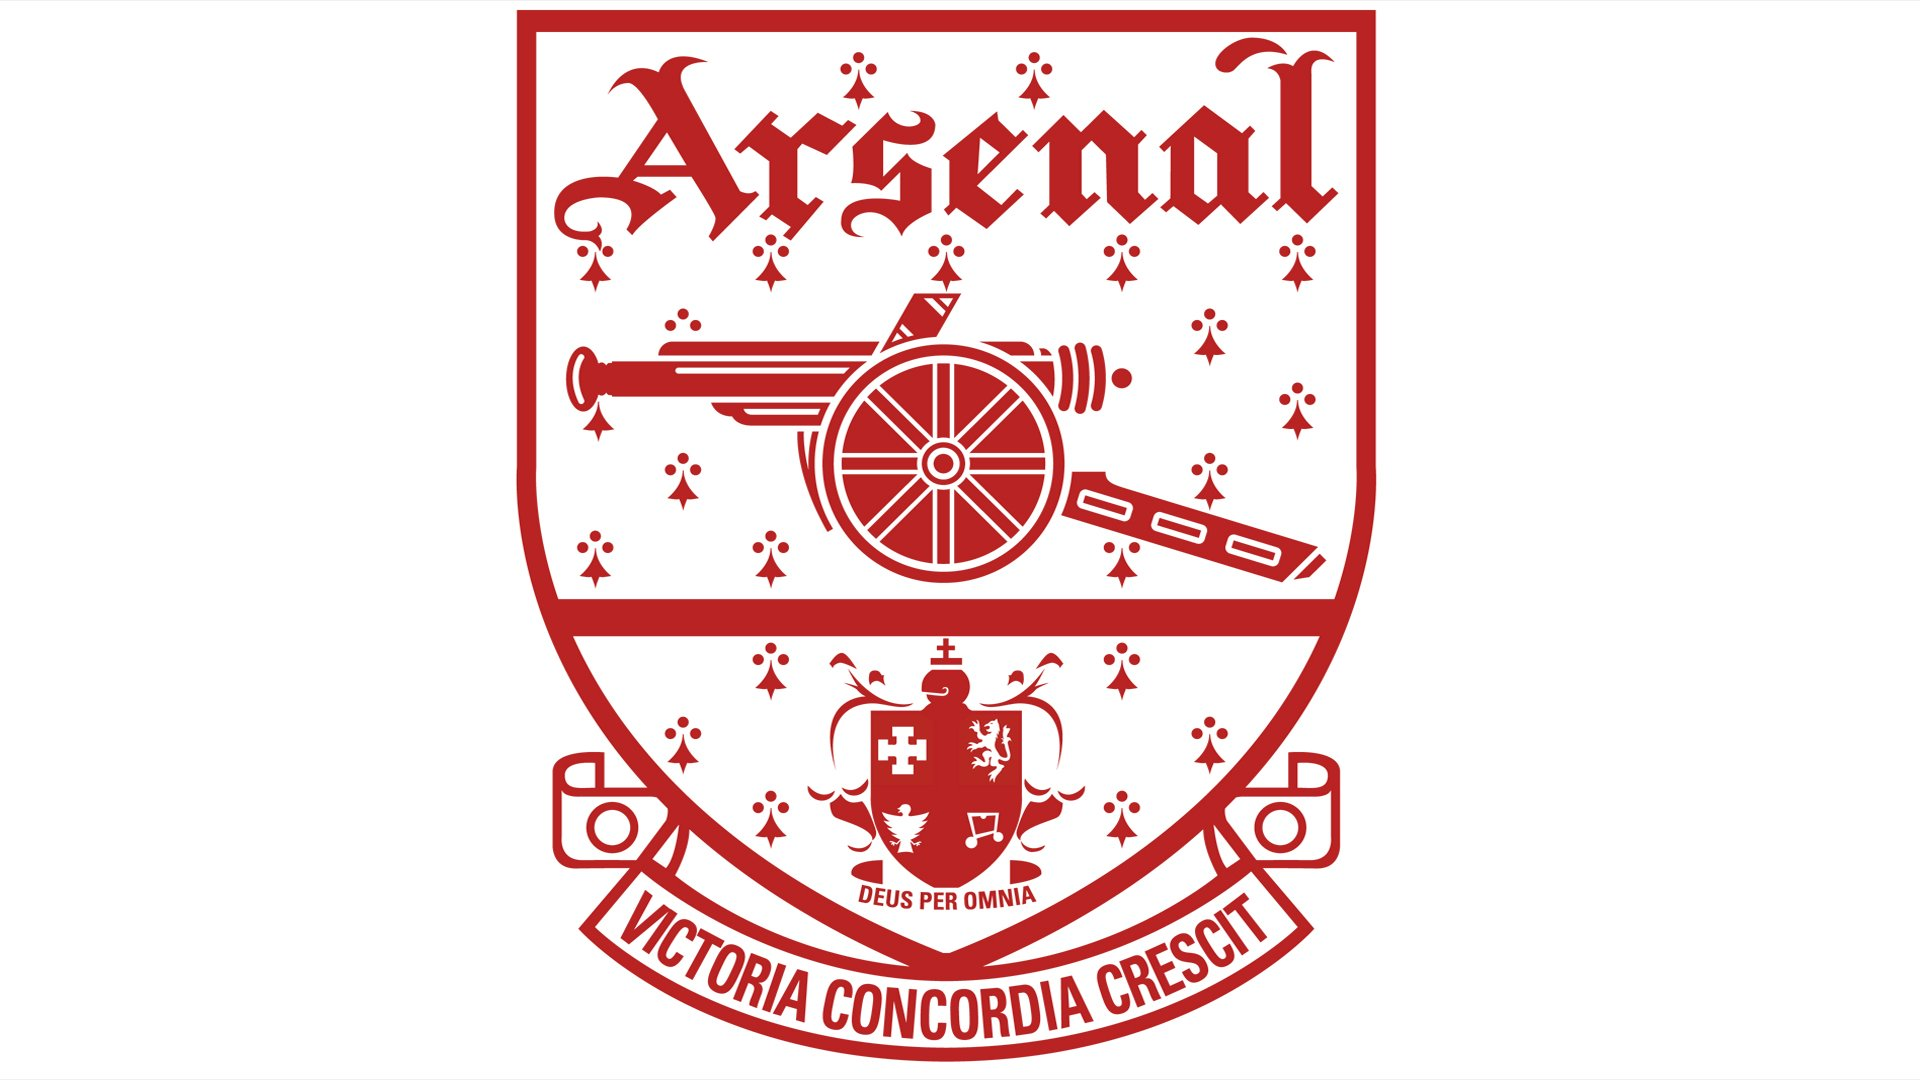 Arsenal Fc Logo: Arsenal Logo, Arsenal Symbol Meaning, History And Evolution